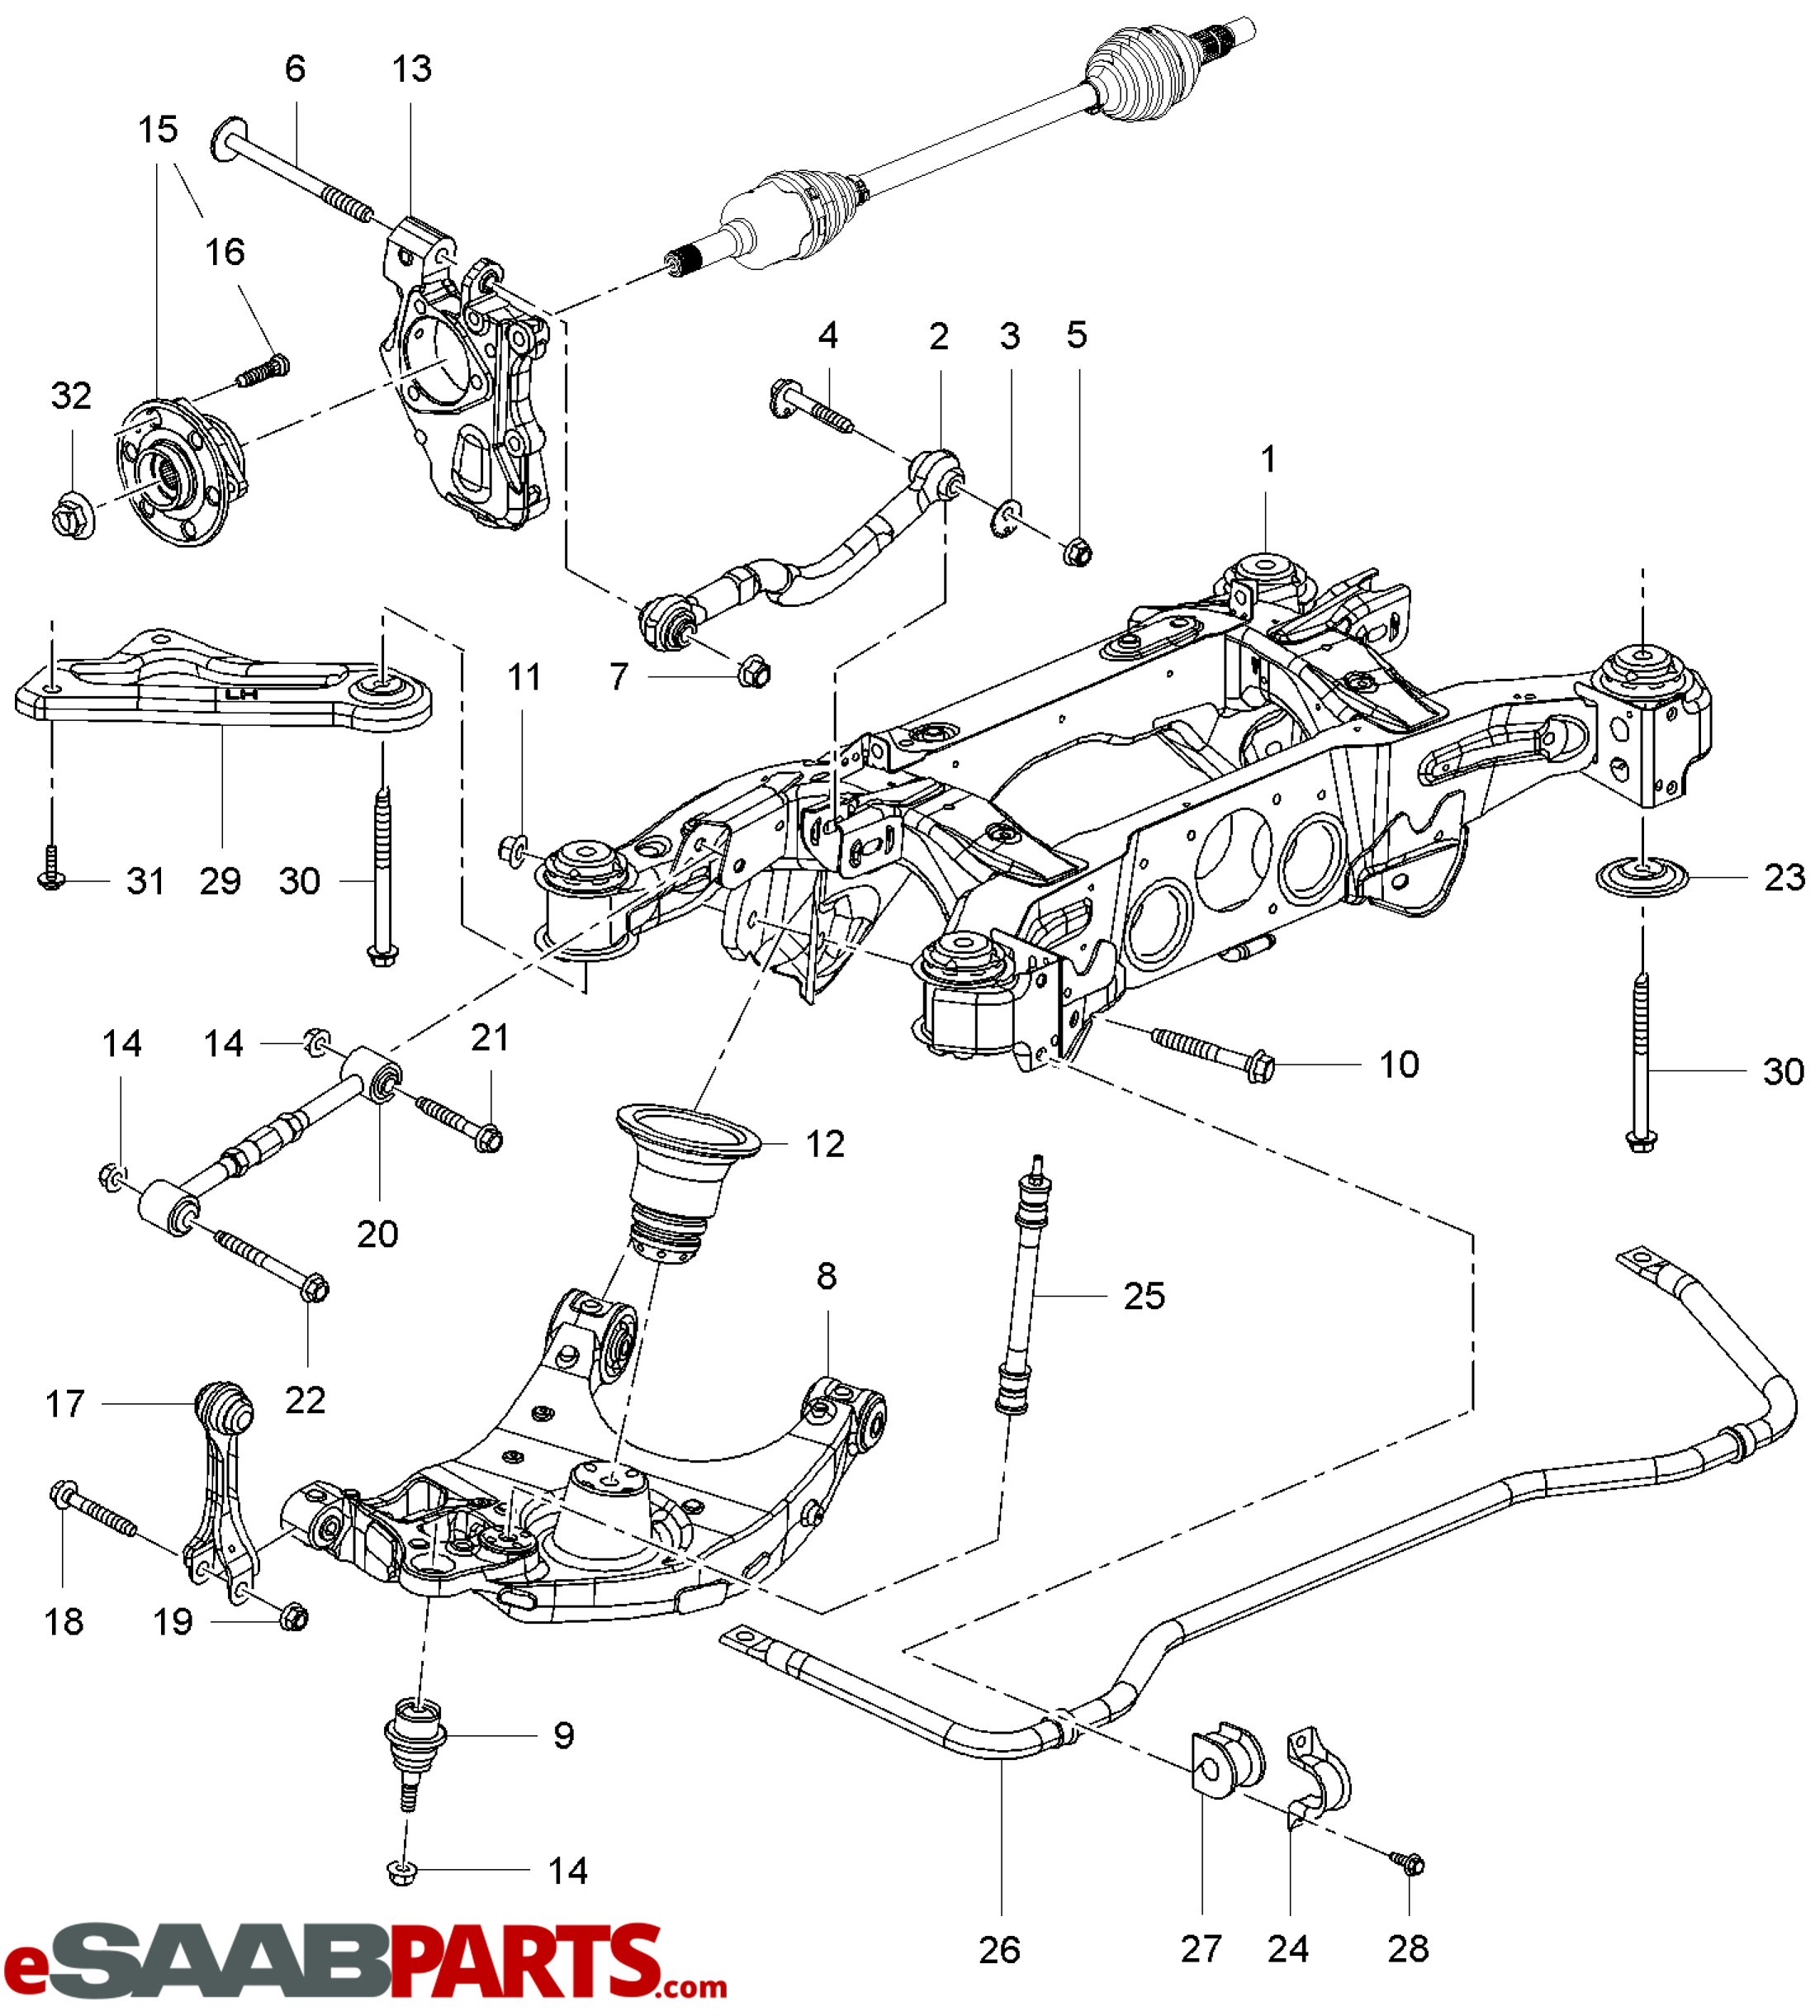 front end diagram wiring trailer lights 7 pin south africa 2002 saab 9 3 suspension imageresizertool com